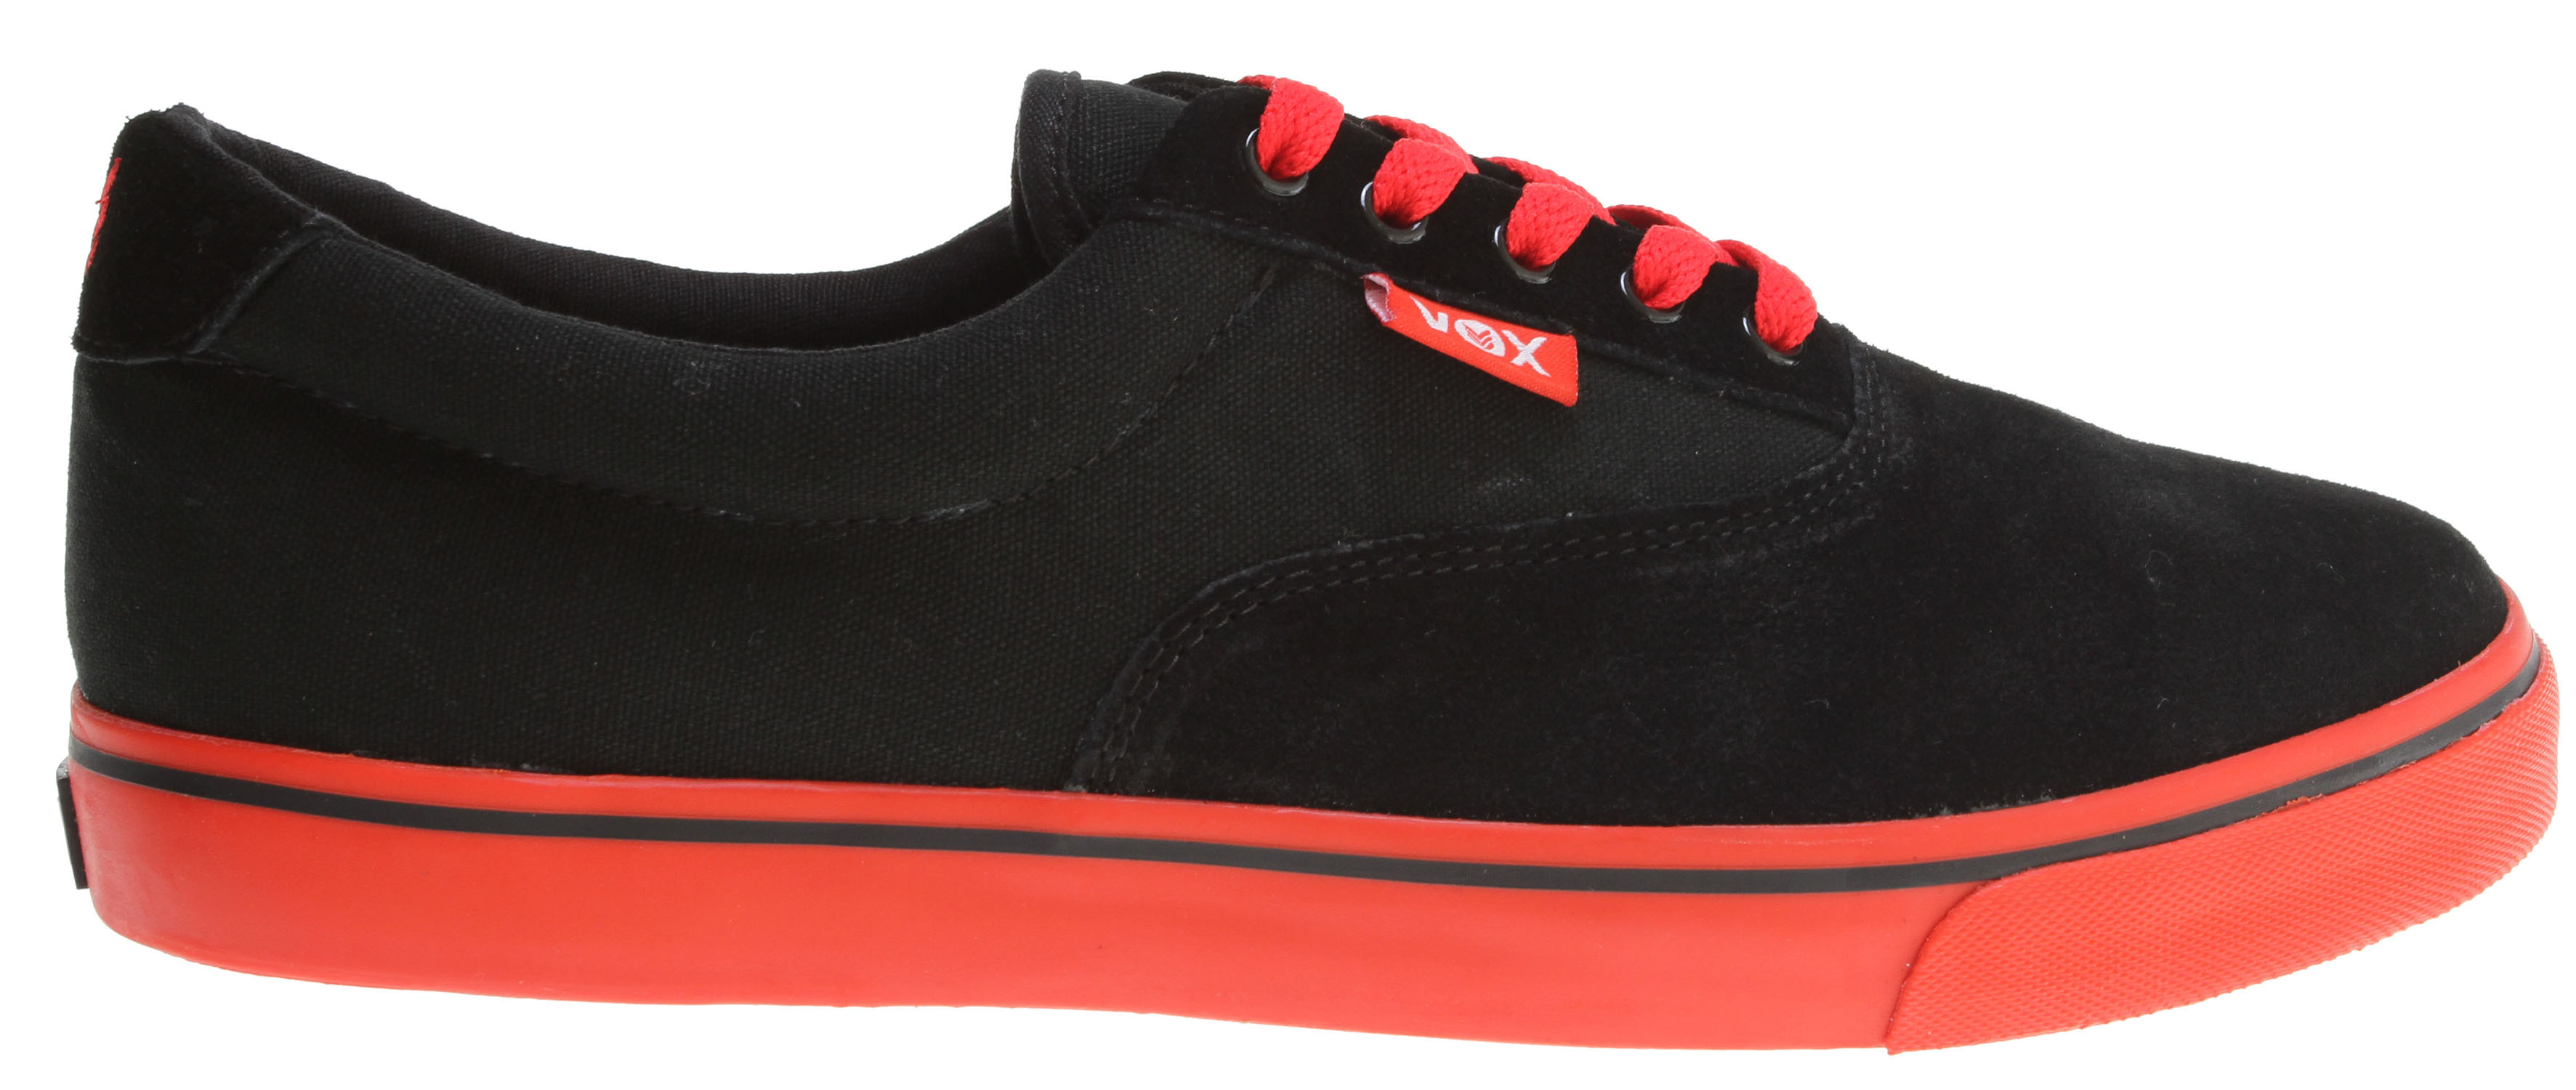 Skateboard Key Features of the Vox Savey Skate Shoes: Vulcanized Construction Suede And Canvas Upper Vox I.R.S. Gel System Gum Rubber Outsole - $29.95